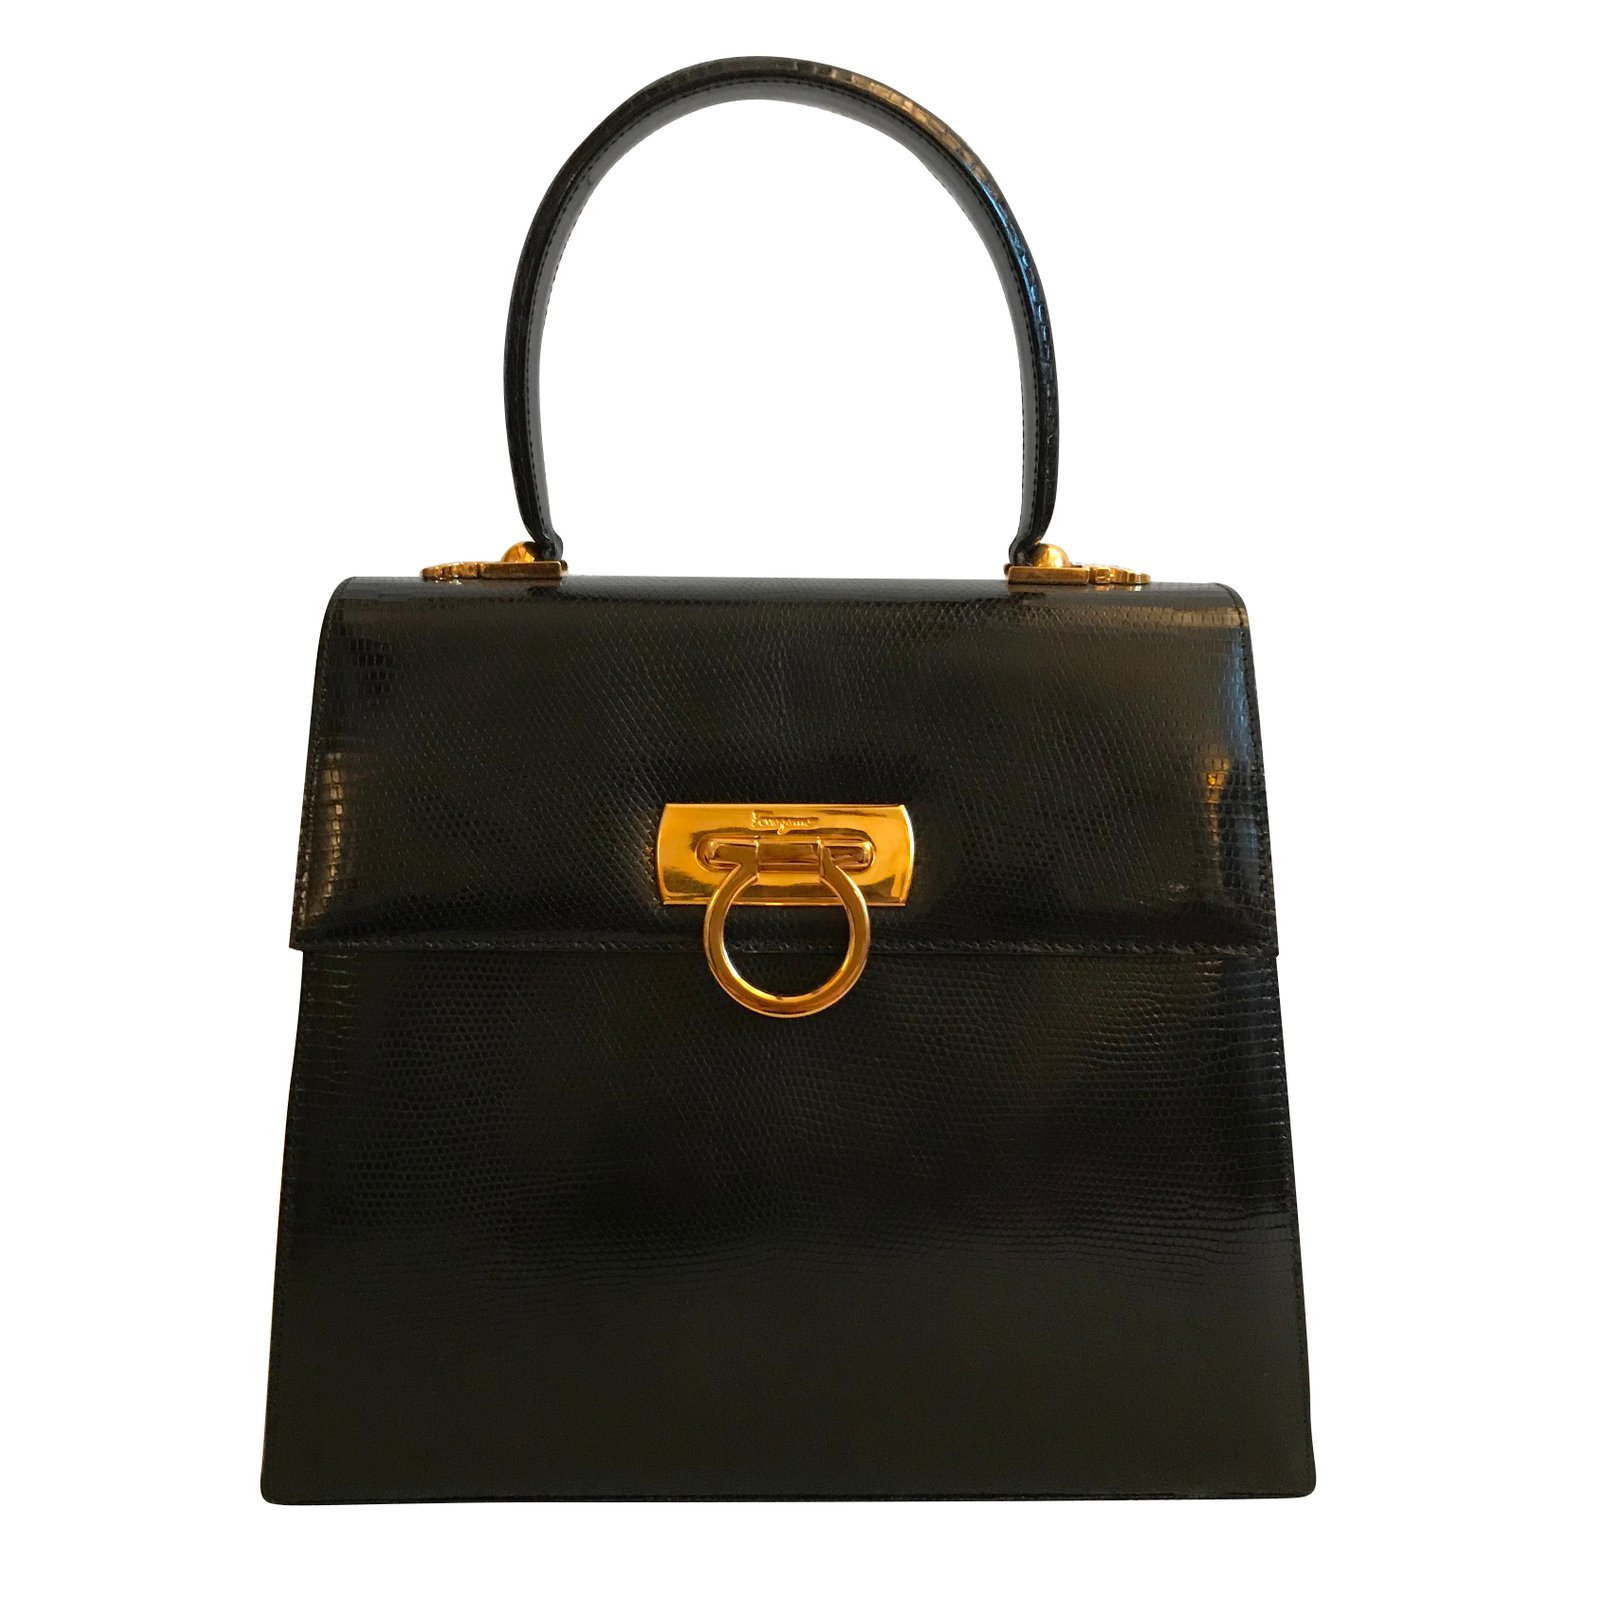 e5bf5ceda4c2 Salvatore Ferragamo Handbags Handbags Exotic leather Black ref.51652 ...